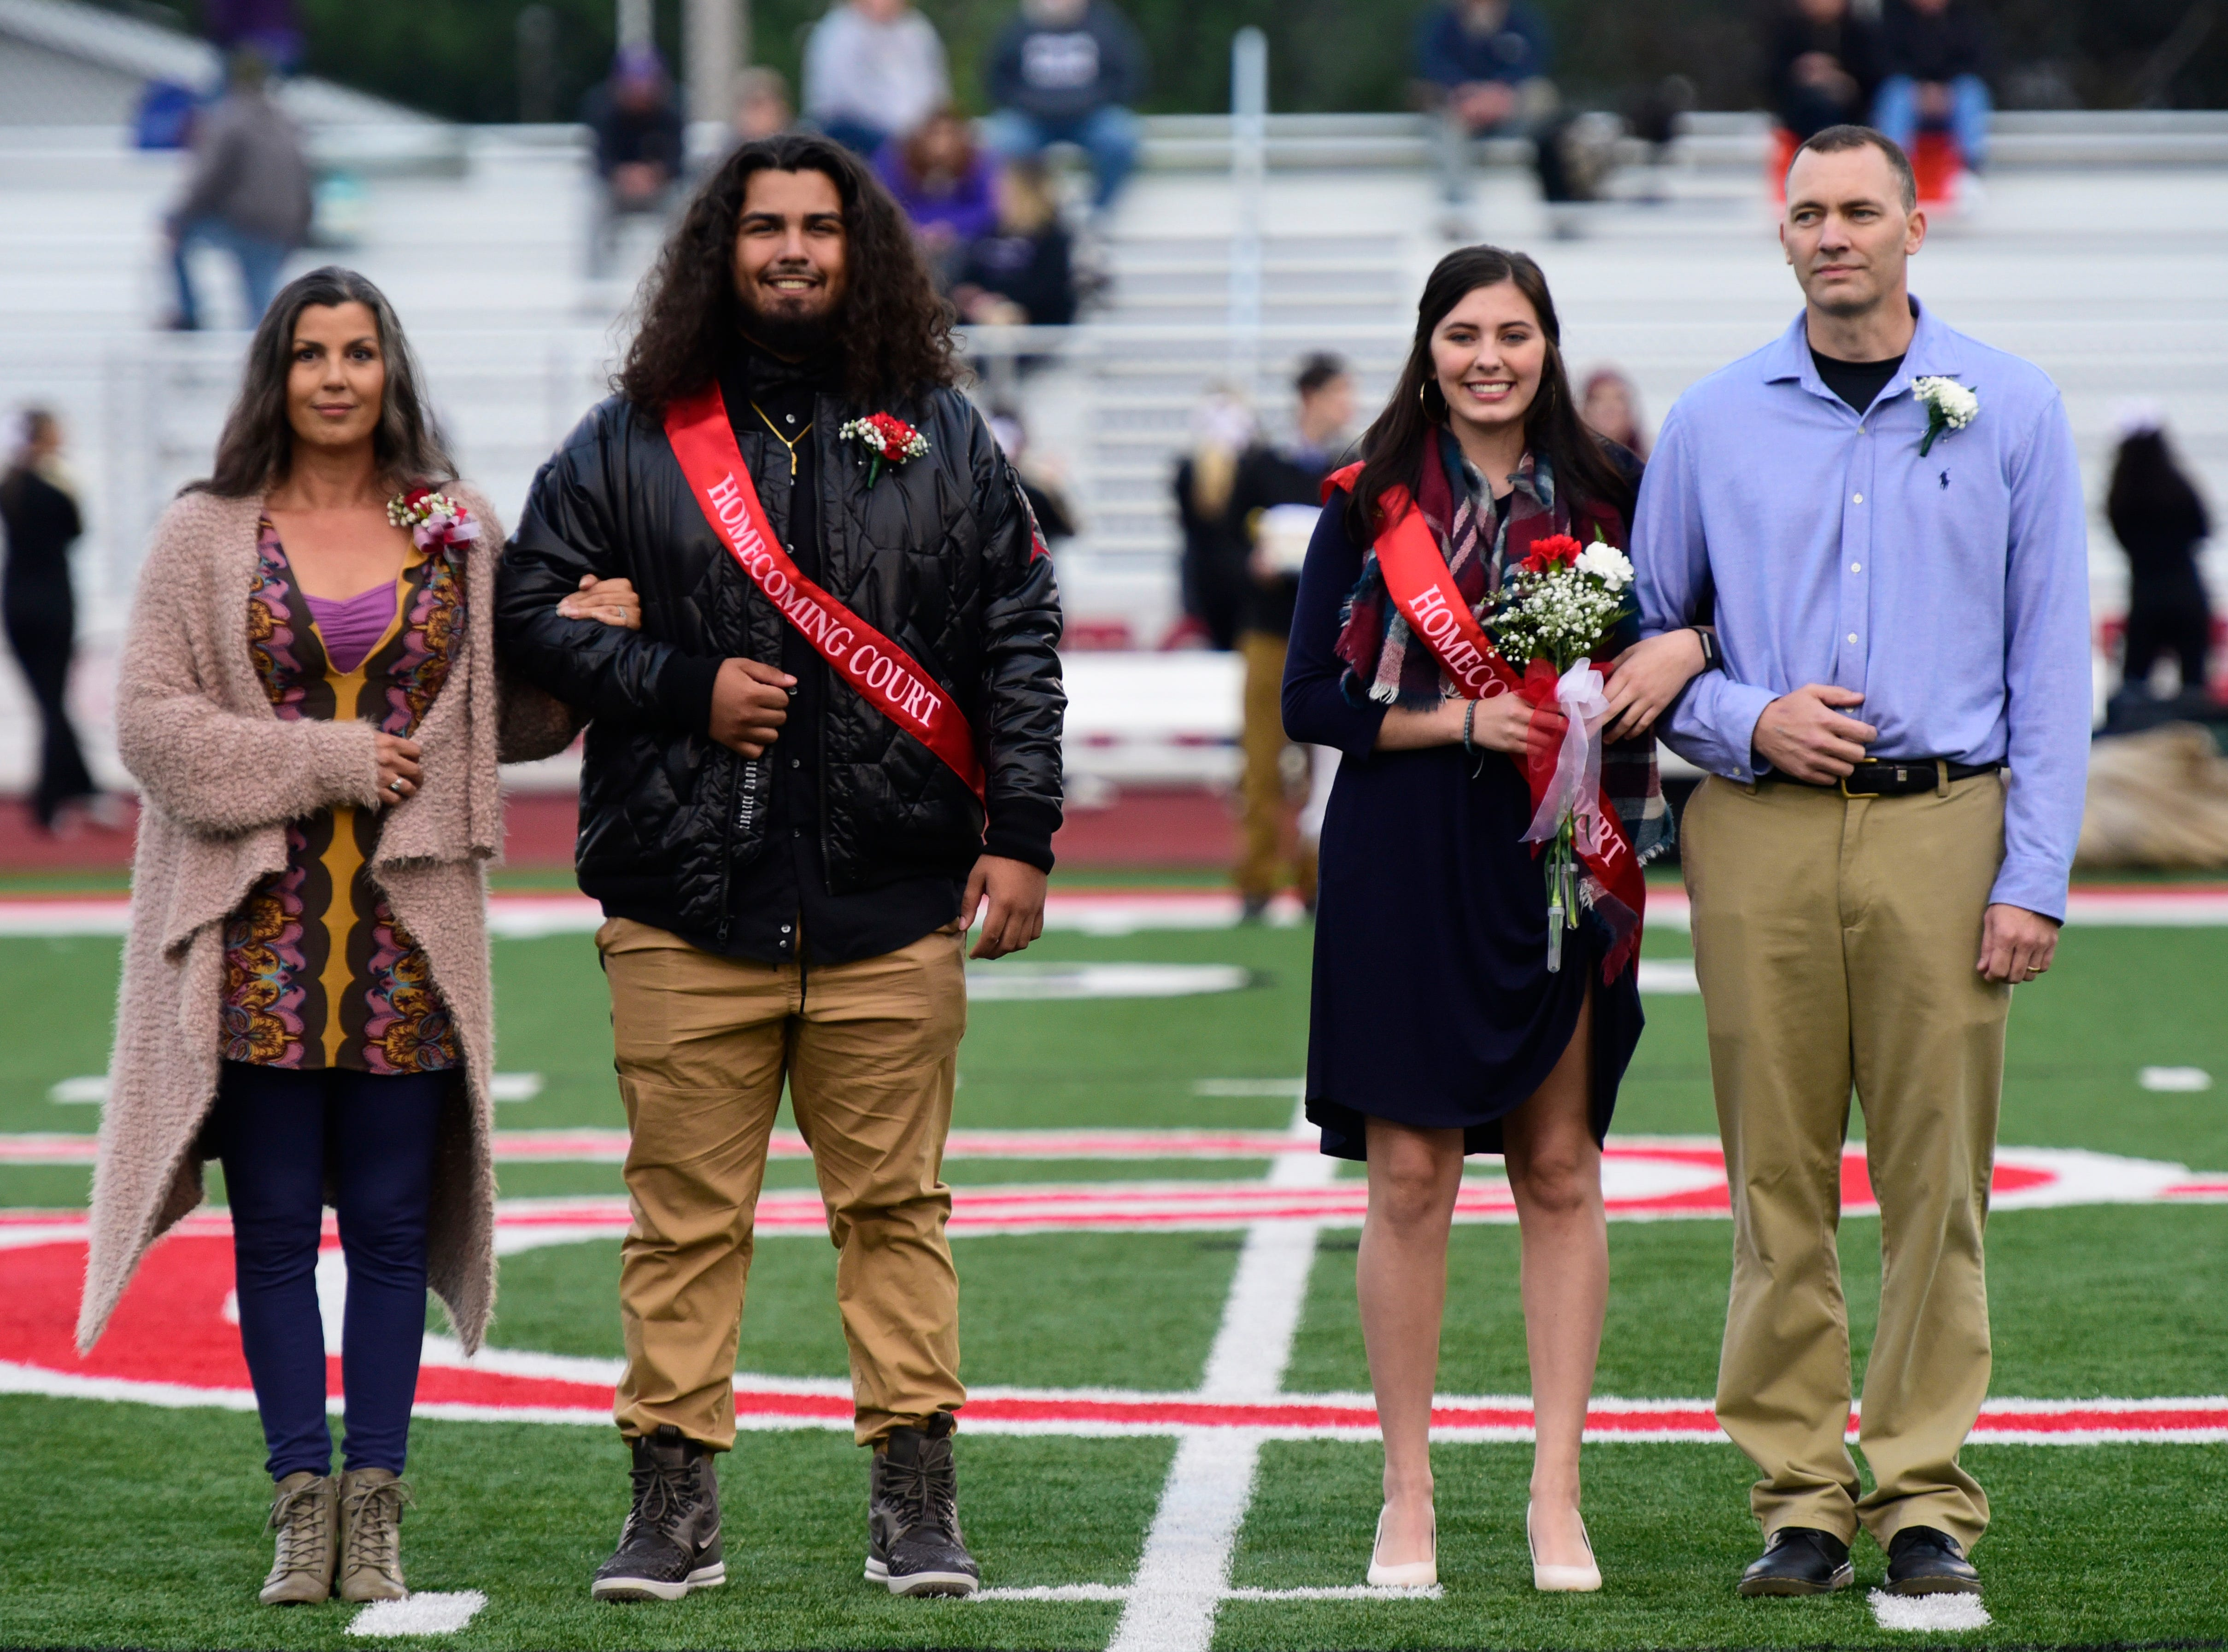 Port Clinton High School 2018 senior homecoming attendants Reece Taylor, left, and Bella Fillmore.